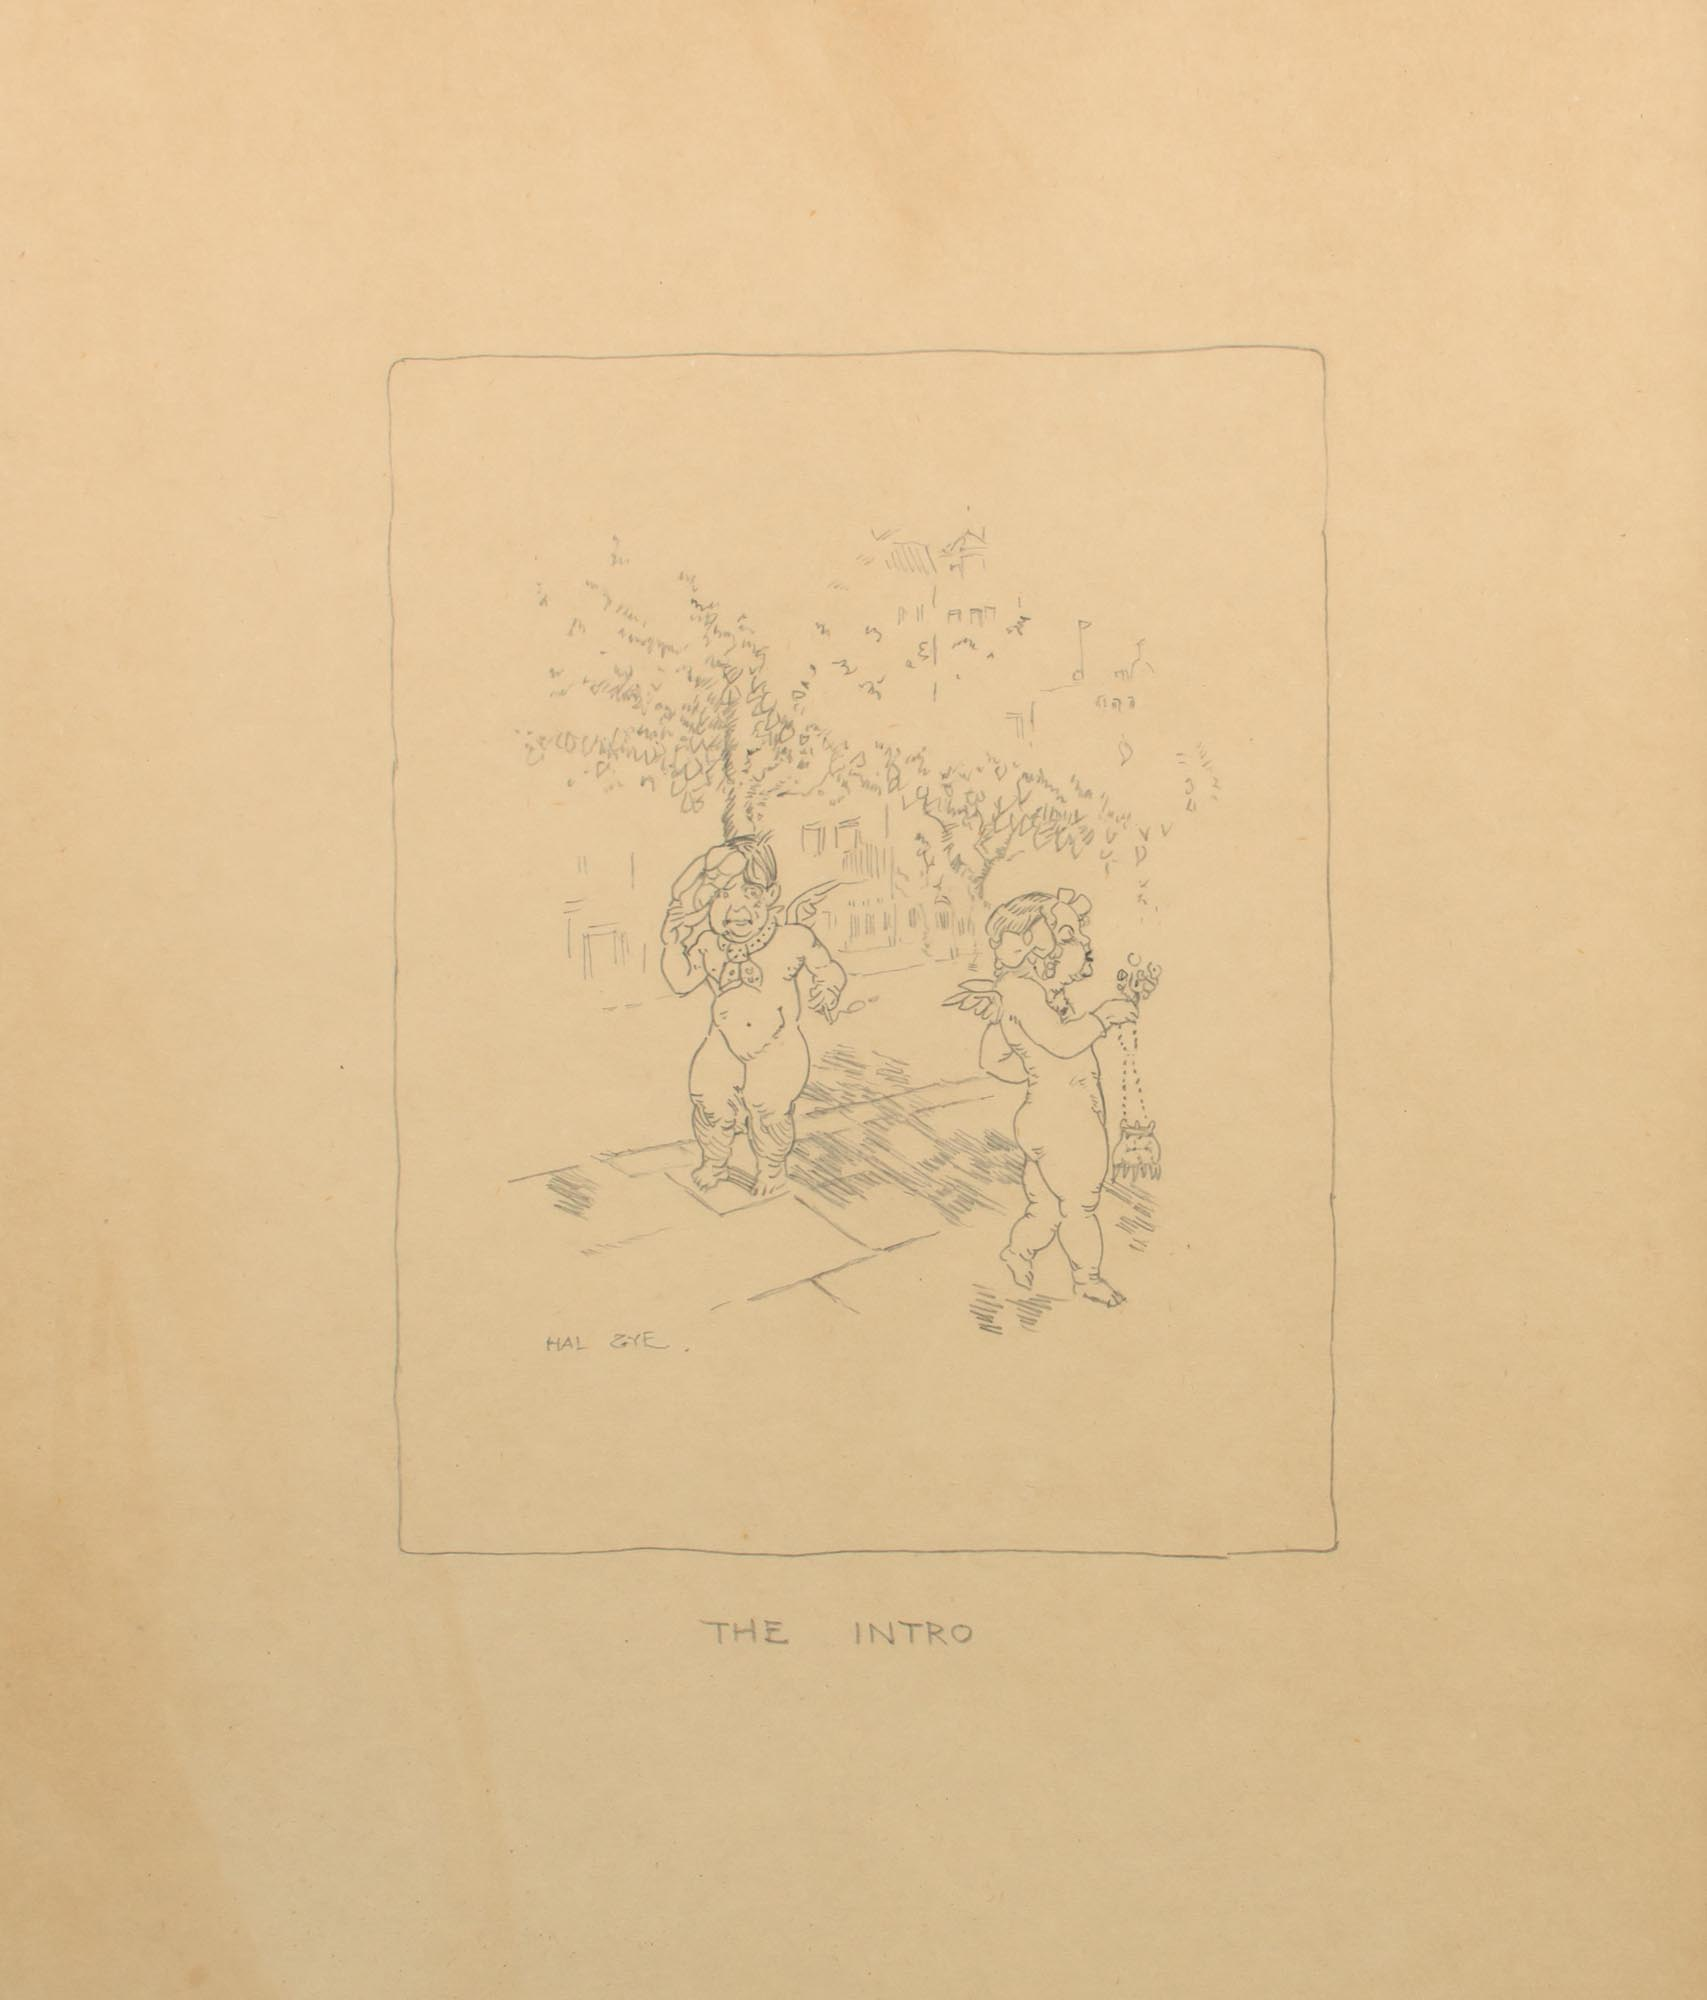 hight resolution of three original pencil drawings being facsimile illustrations of his artwork in the